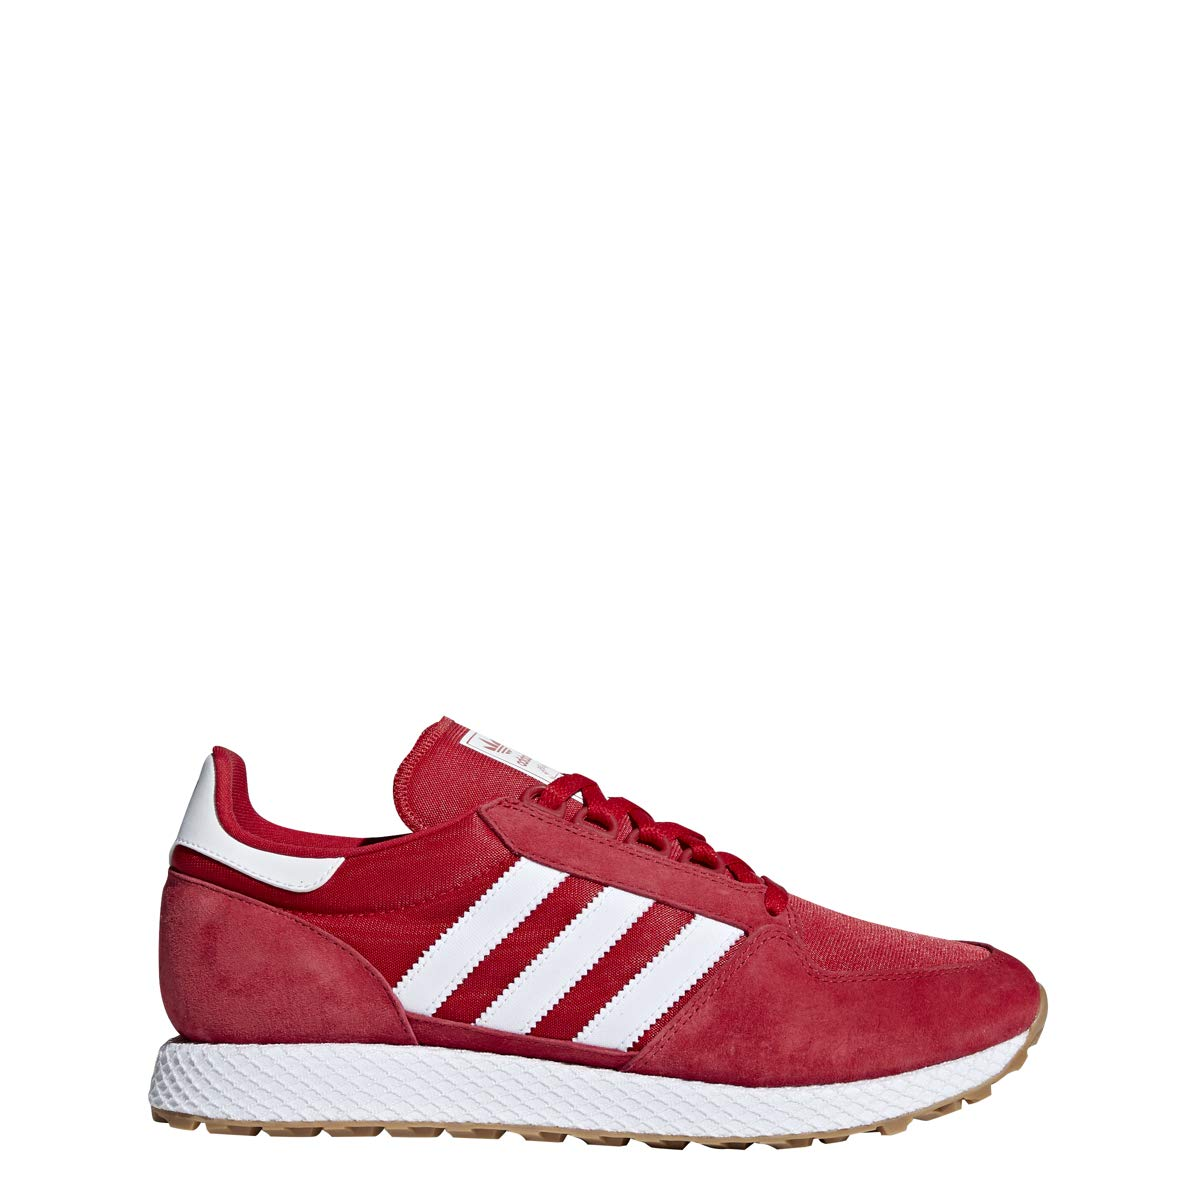 - Adidas Forest Grove Scarlet Red